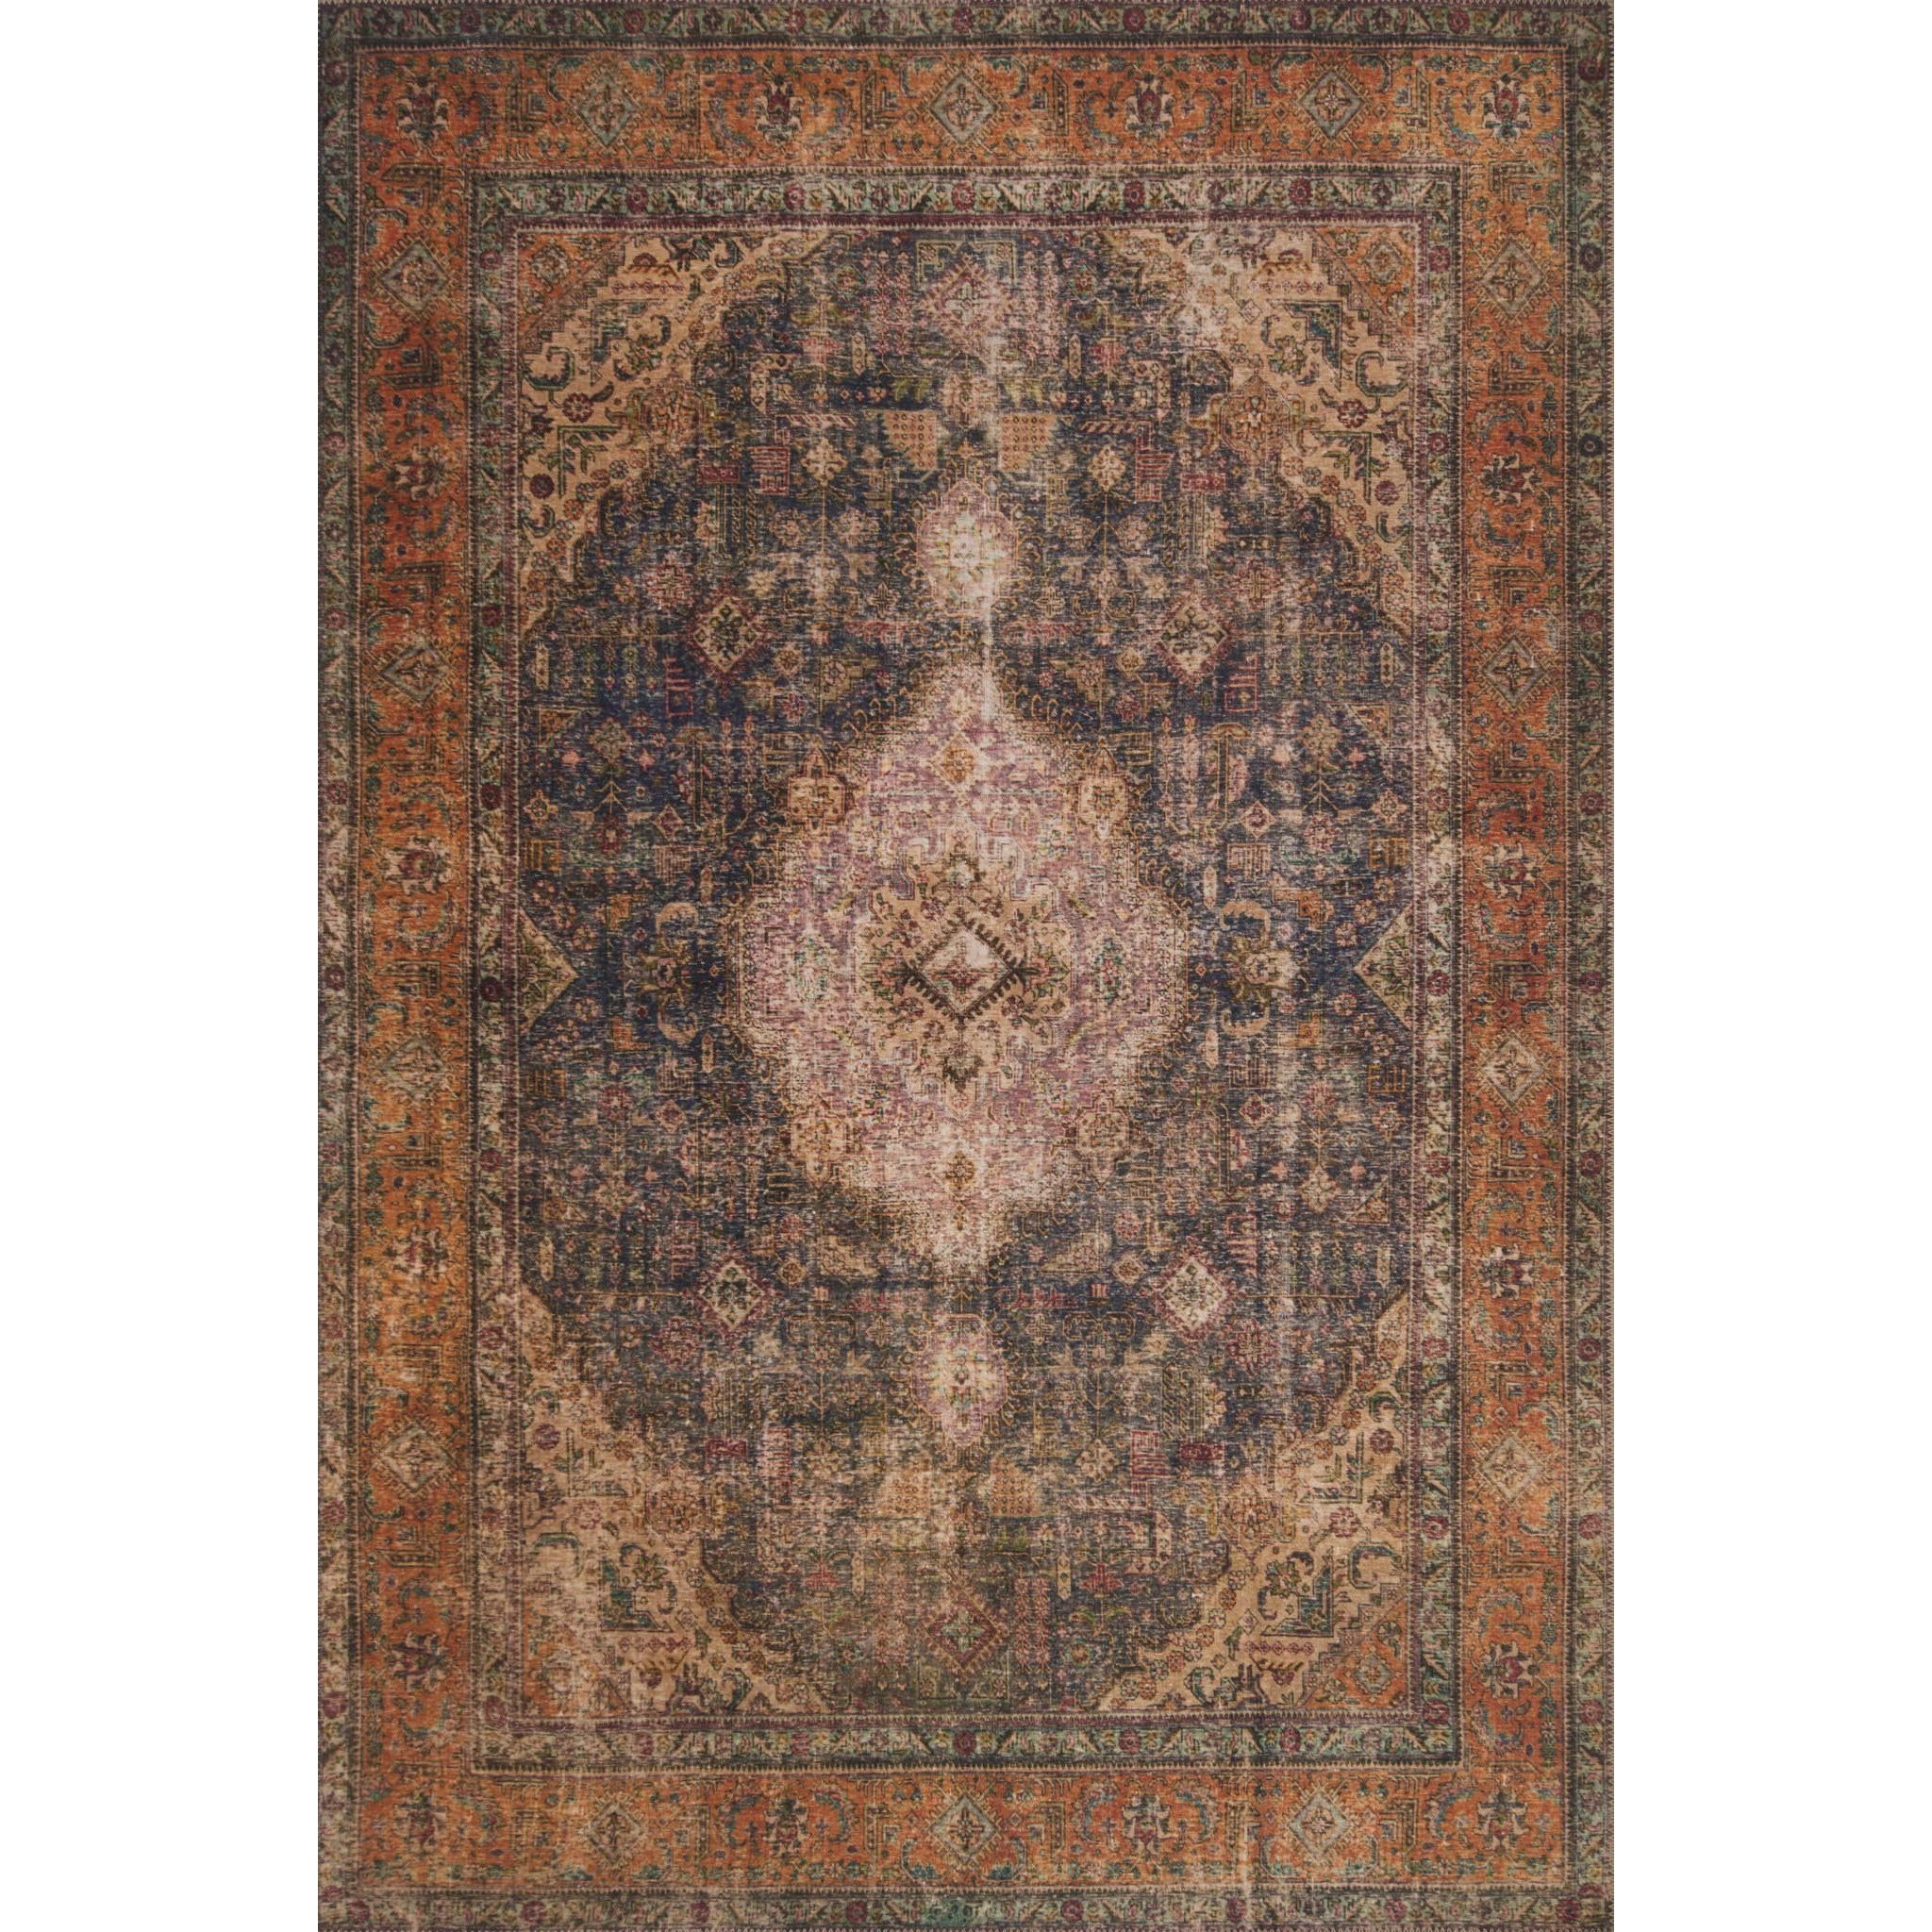 "Loren 5'-0"" x 7'-6"" Area Rug by Loloi Rugs at Virginia Furniture Market"